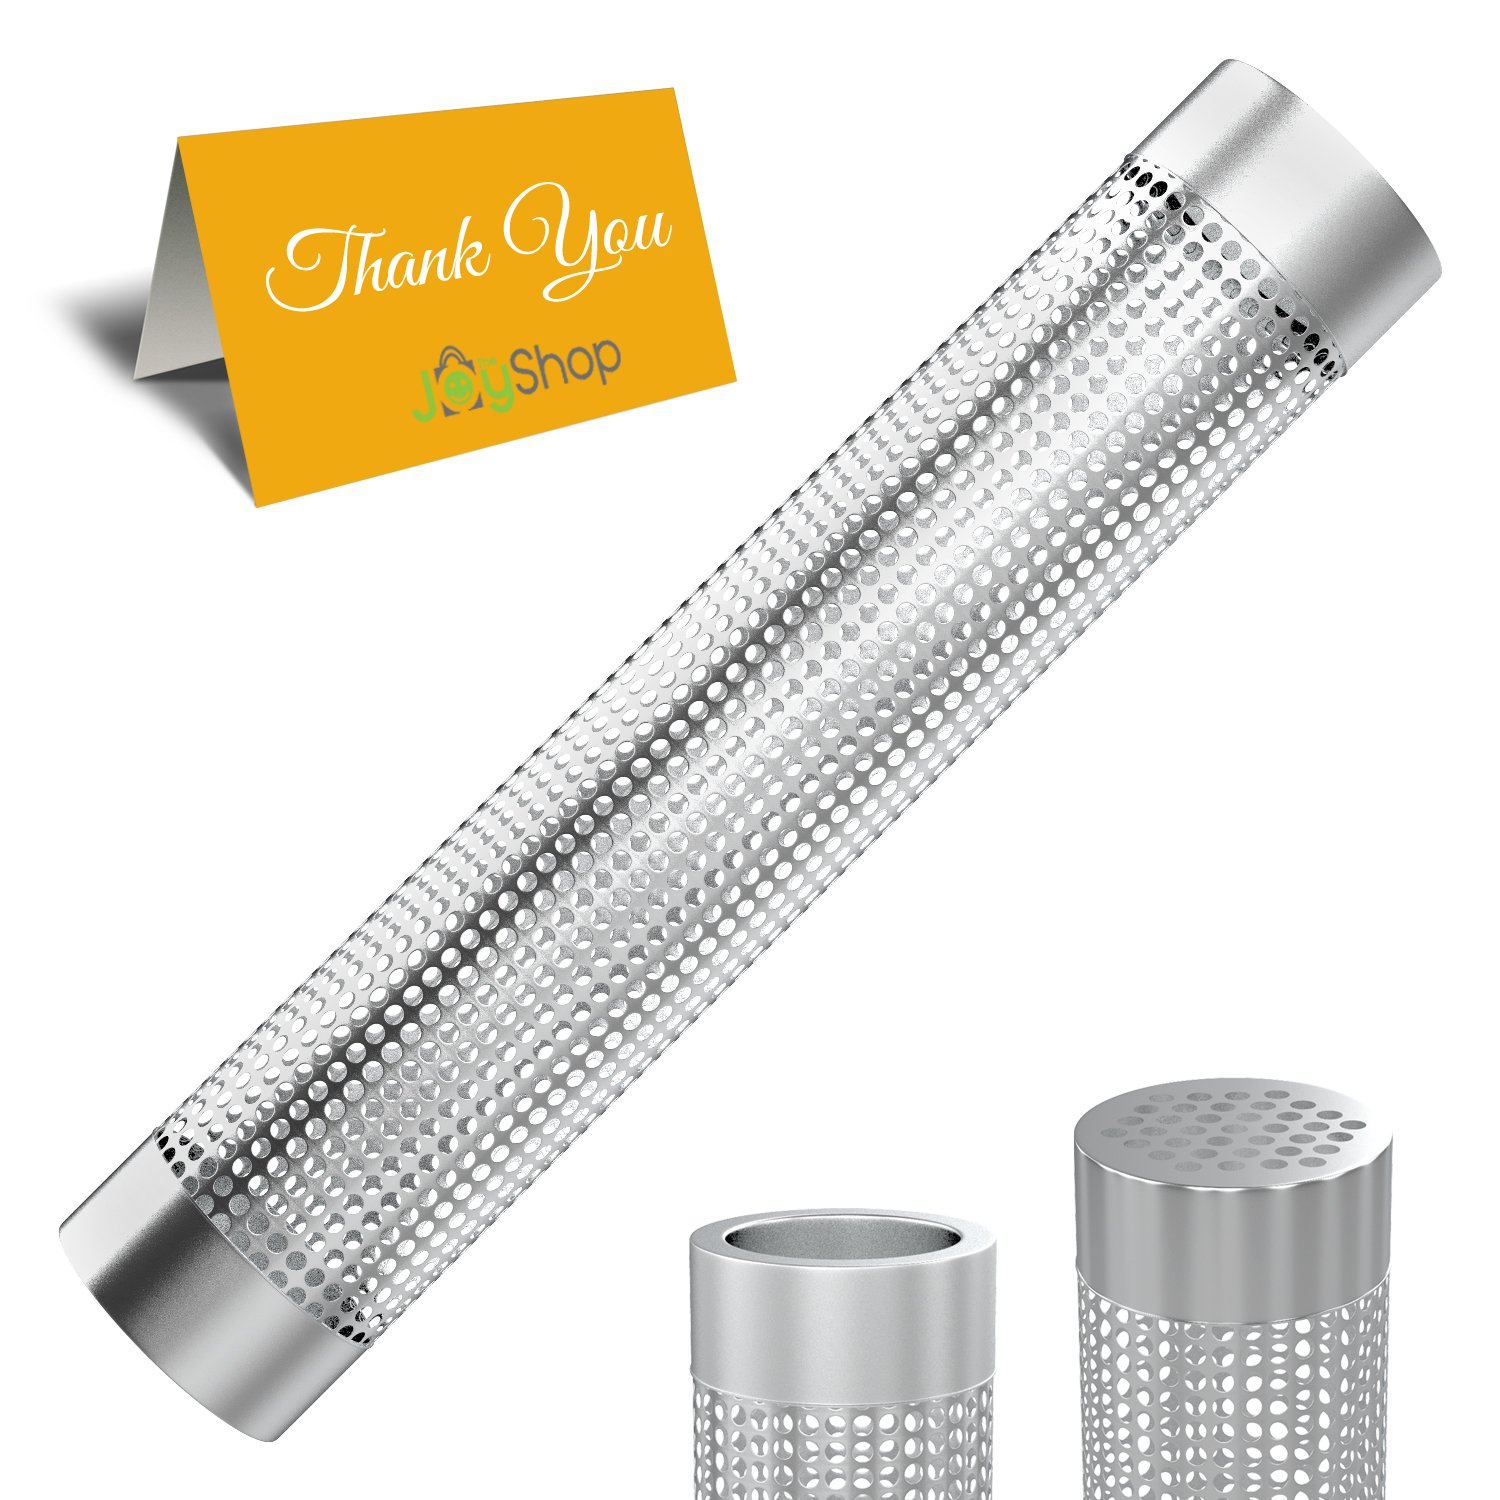 The Joy Shop Pellet Smoker Tube Grill (12 inch) – Stainless Steel Smoker Tube - 5 Hours Billowing Smoke – Suitable Any Smoker - Hot Cold Smoking - Easy, Safe Tasty Smoking – Comes 2 Skewers